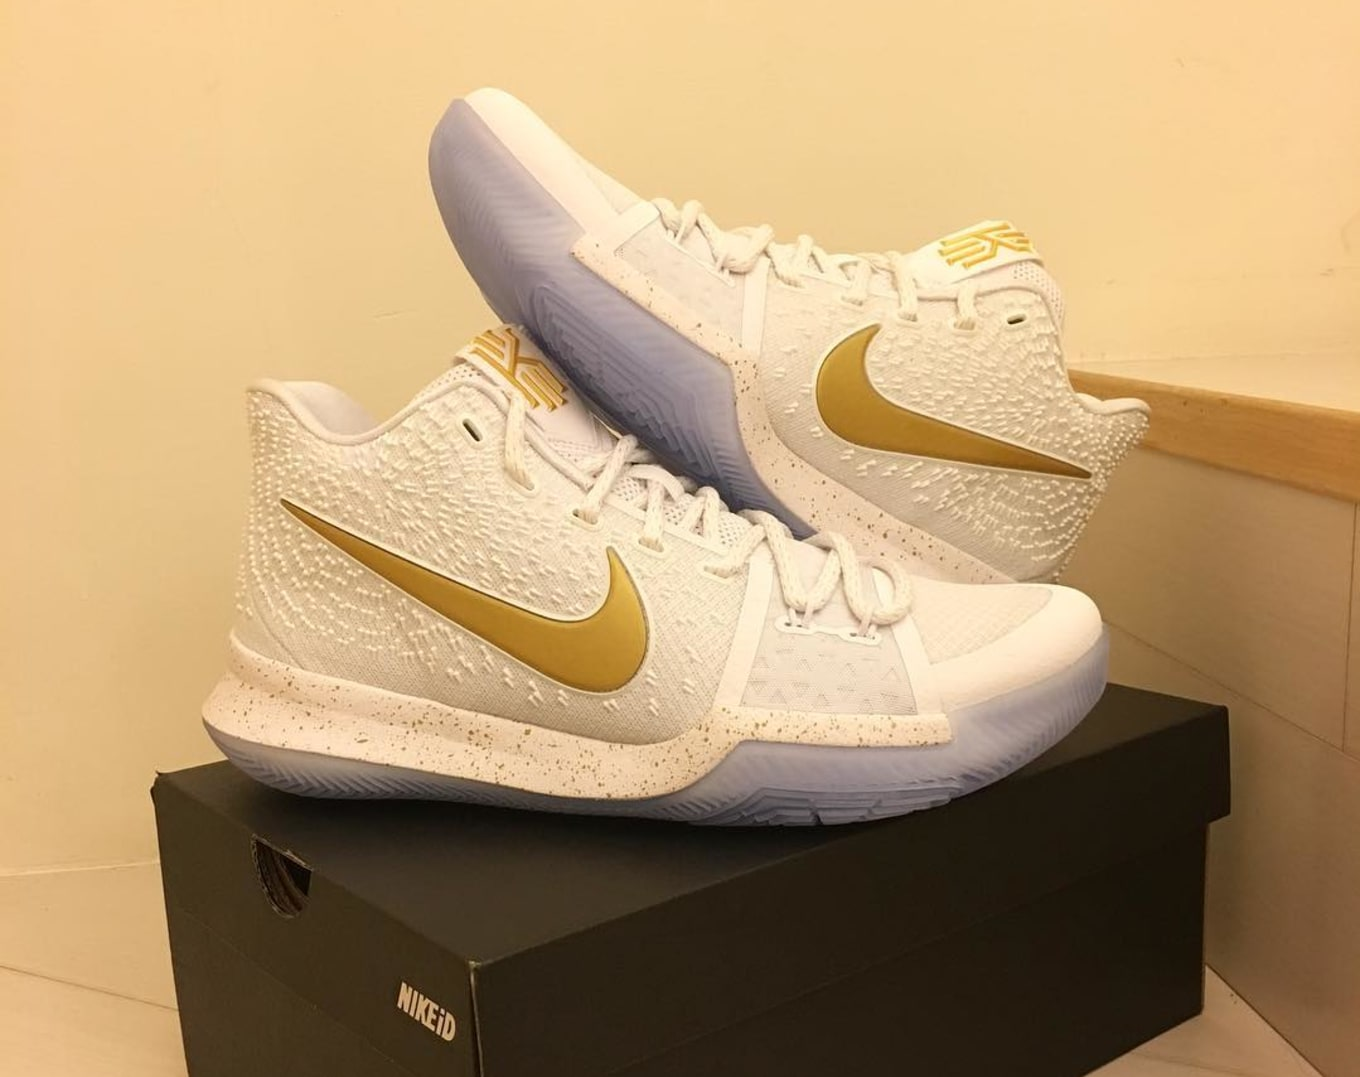 4d41b155c86a australia nike kyrie 3 christmas basketball shoe mens white gold 8d695  77132  uk the best nike id kyrie 3 designs sole collector 98b90 6f49a